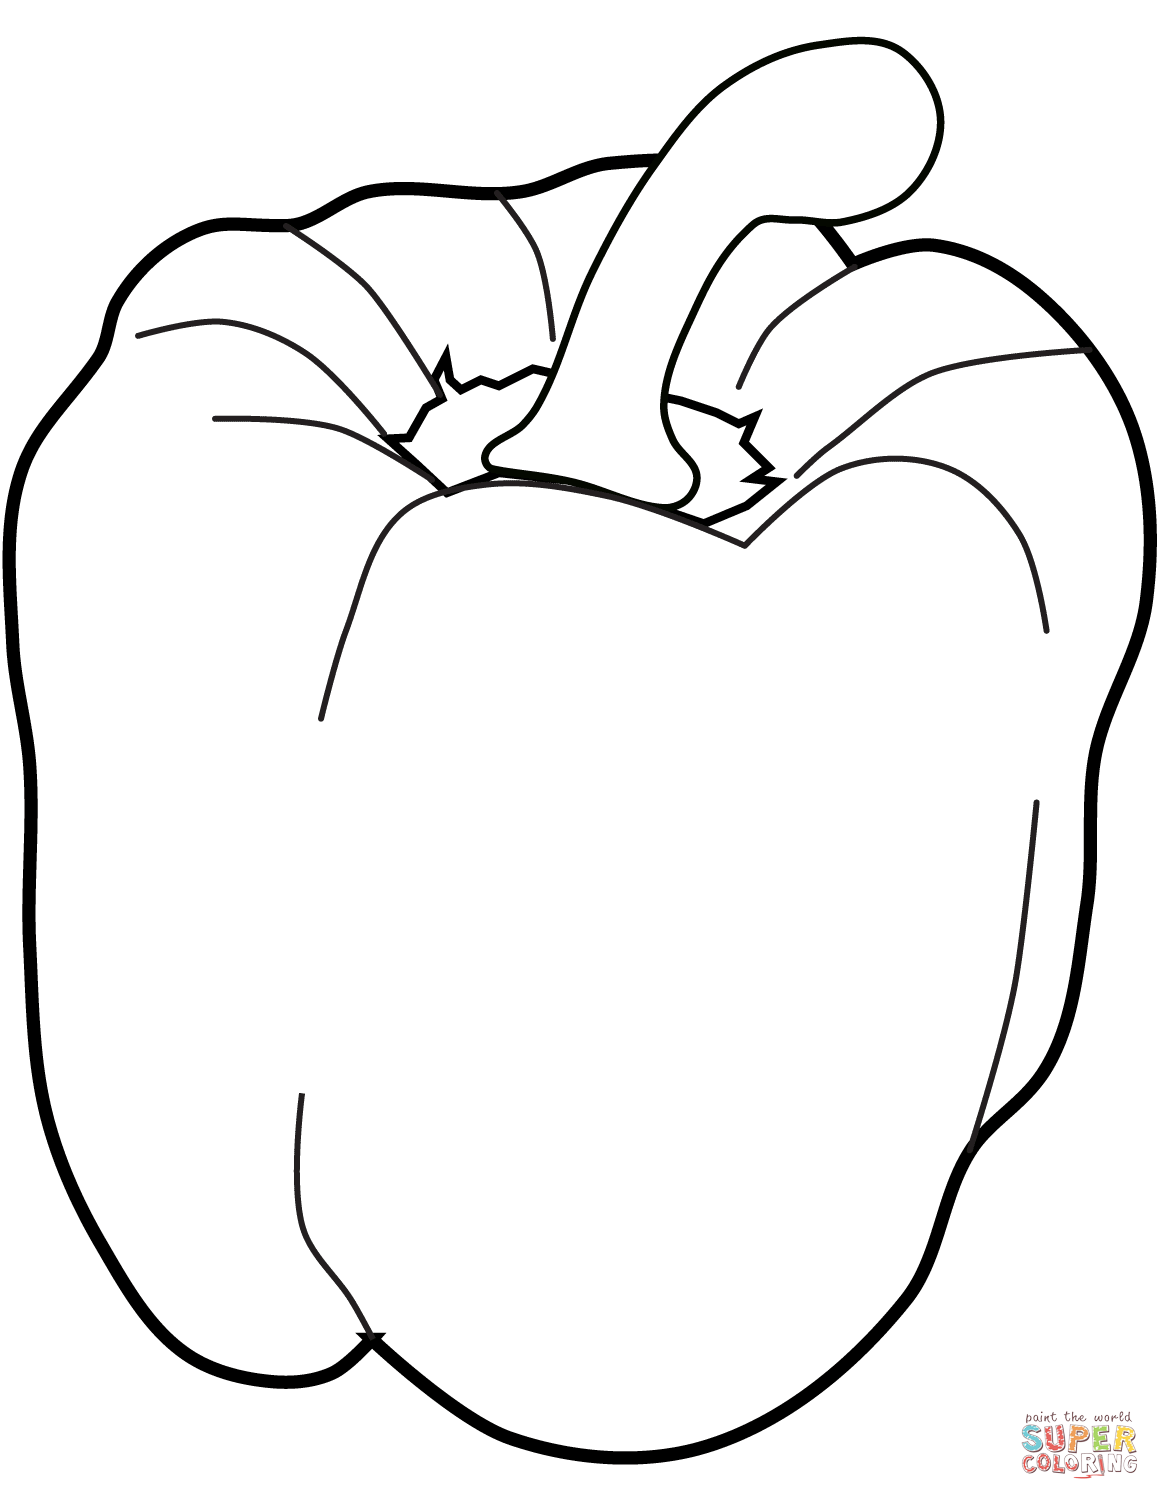 Sweet Pepper coloring page | Free Printable Coloring Pages | Vegetable coloring  pages, Coloring pages, Food coloring pages